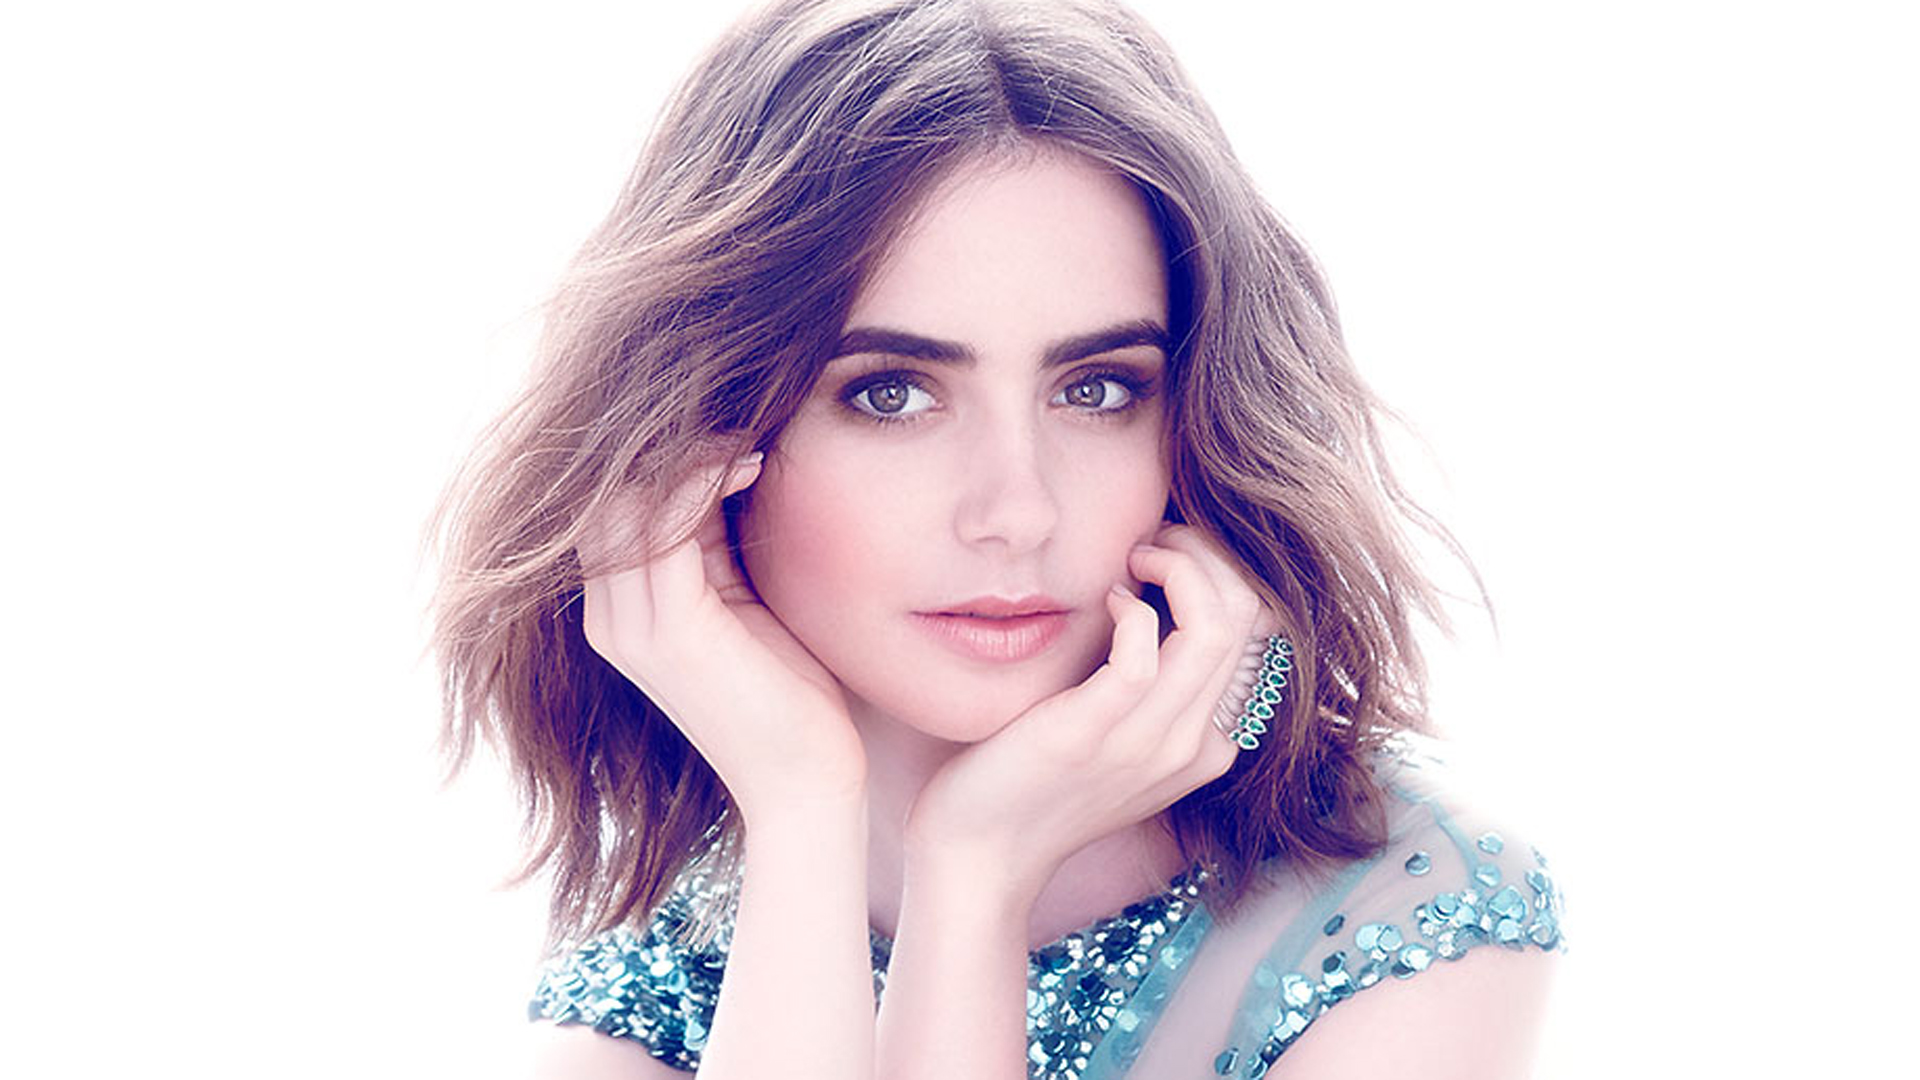 Wallpapers Lily Collins Galleries Lily Collins Pics Lily Collins 1920x1080